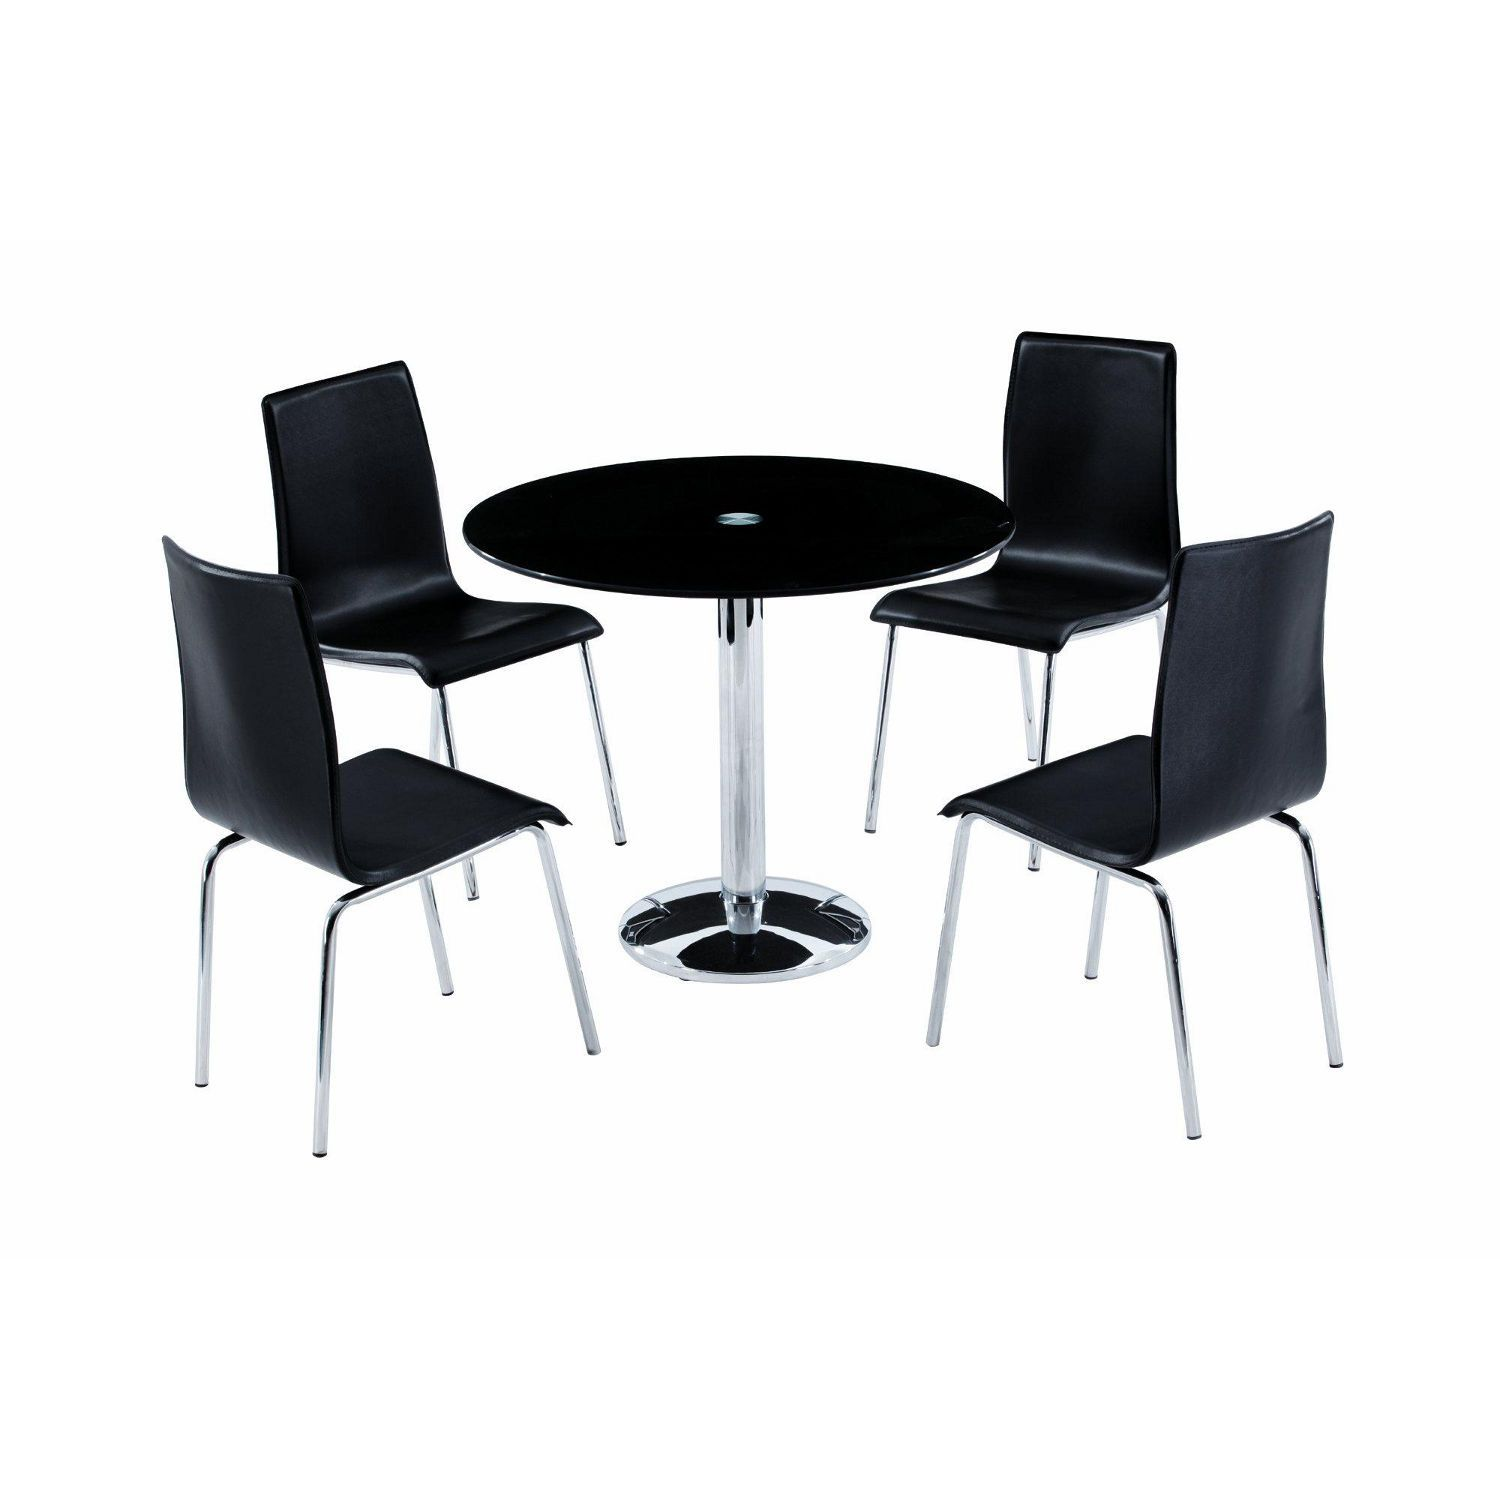 Round Black Glass Dining Table With Single Legs And Four Plastic Chairs